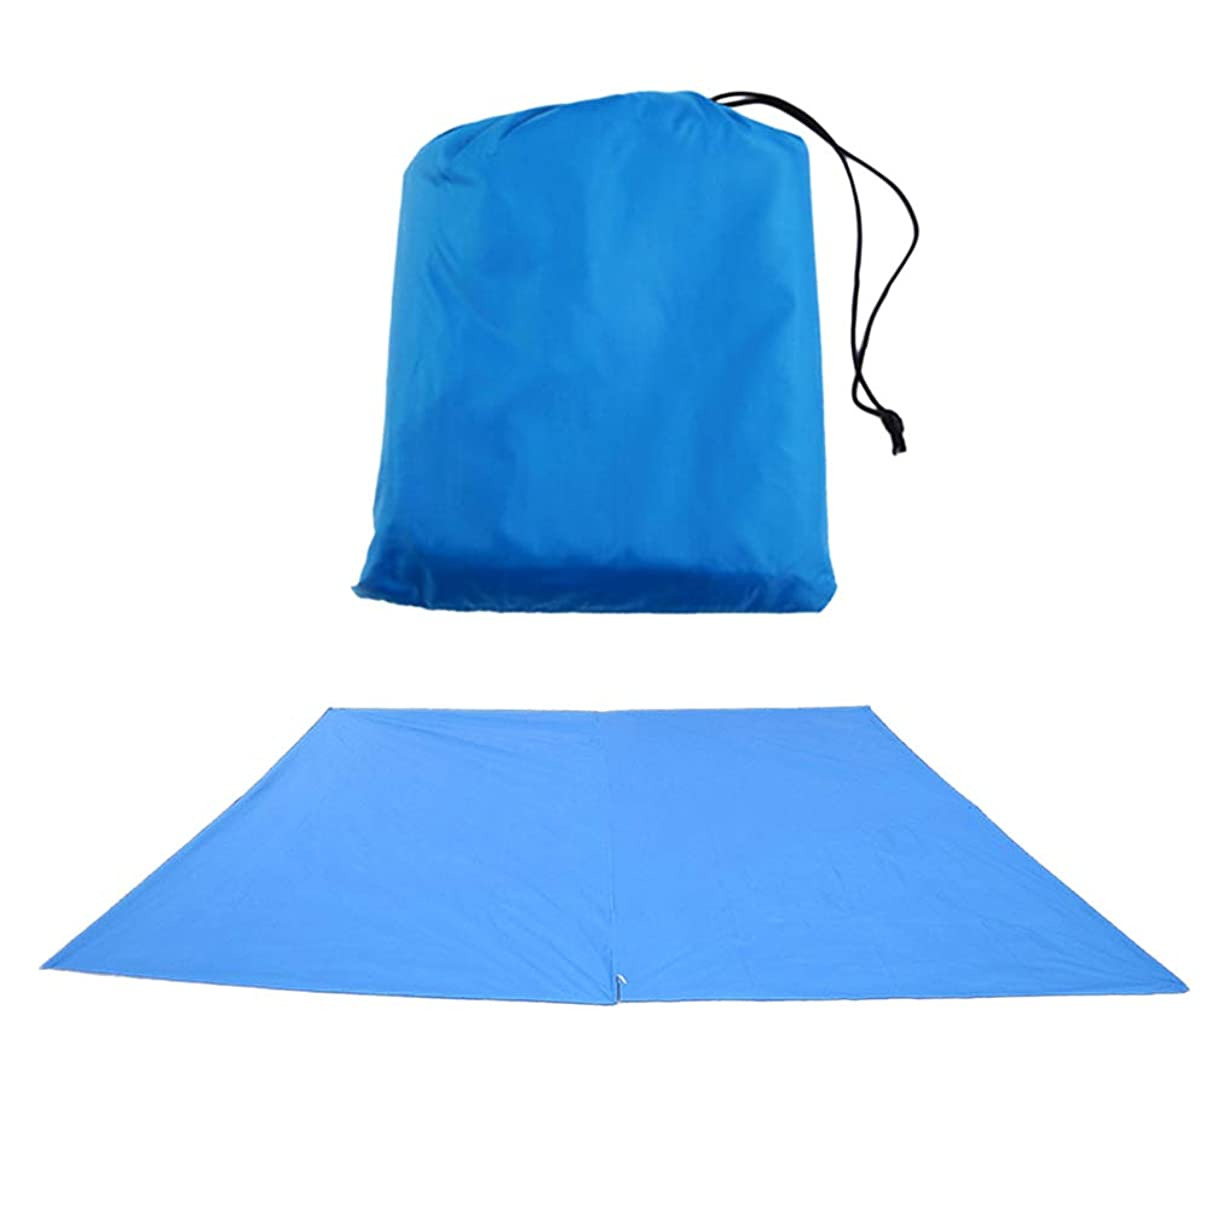 Yardwe Camping Tarp Waterproof Outdoor Lightweight Backpacking Tent Tarp Camping Shelter Blue 300300cm